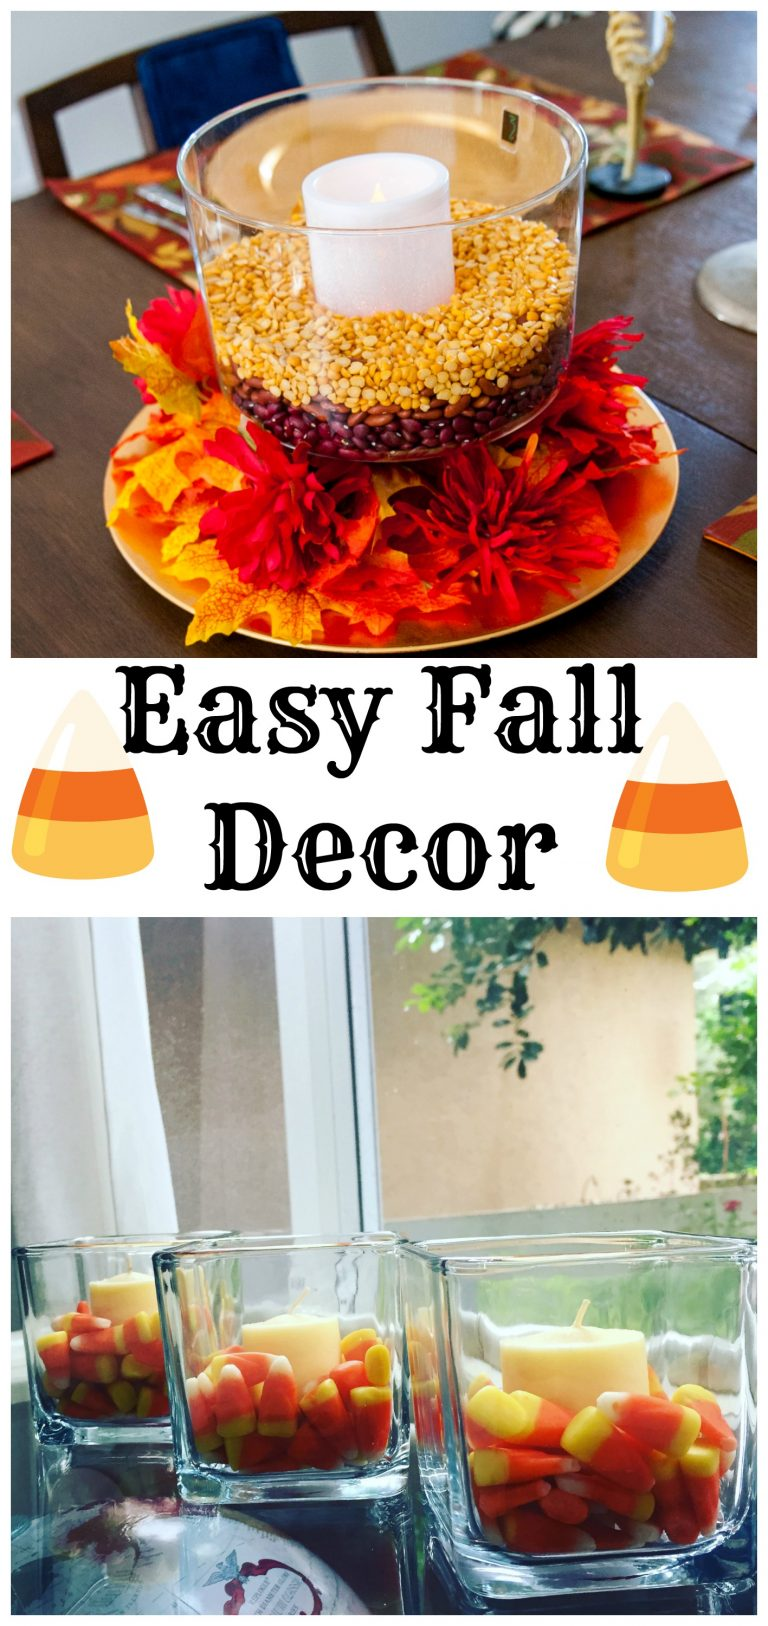 Easy Fall Decor